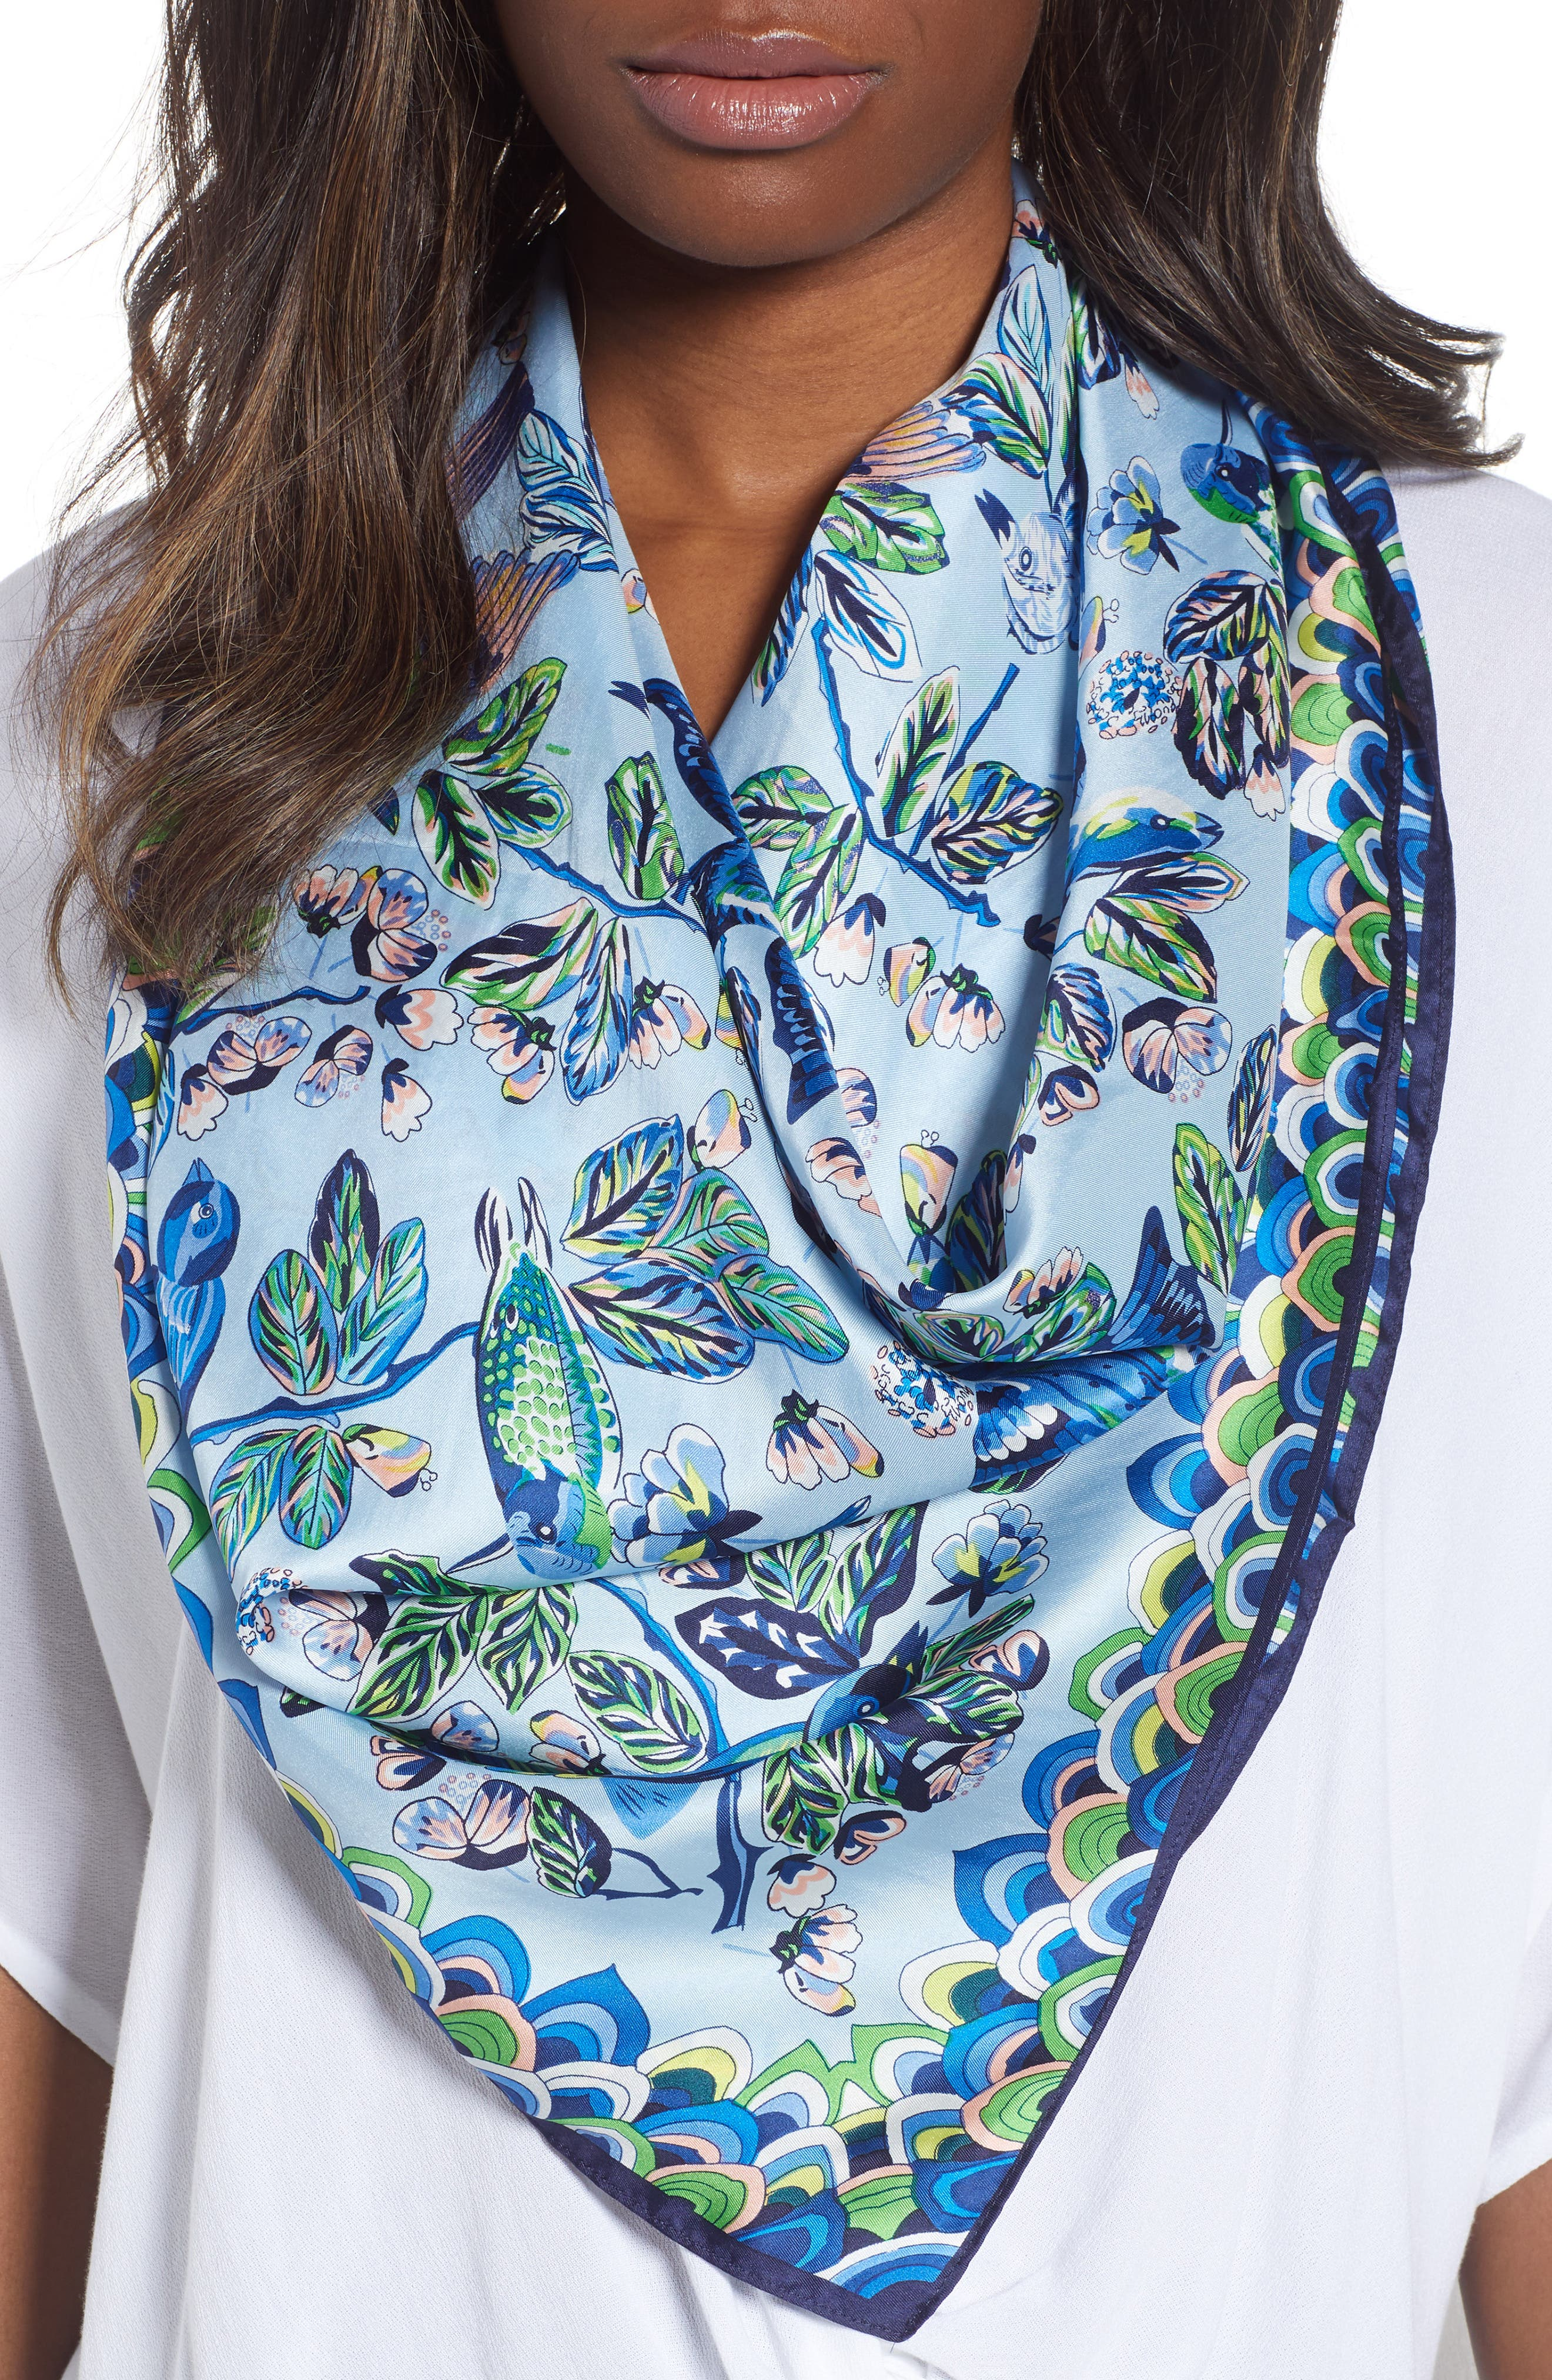 Flight of Fancy Square Silk Scarf,                             Main thumbnail 1, color,                             451